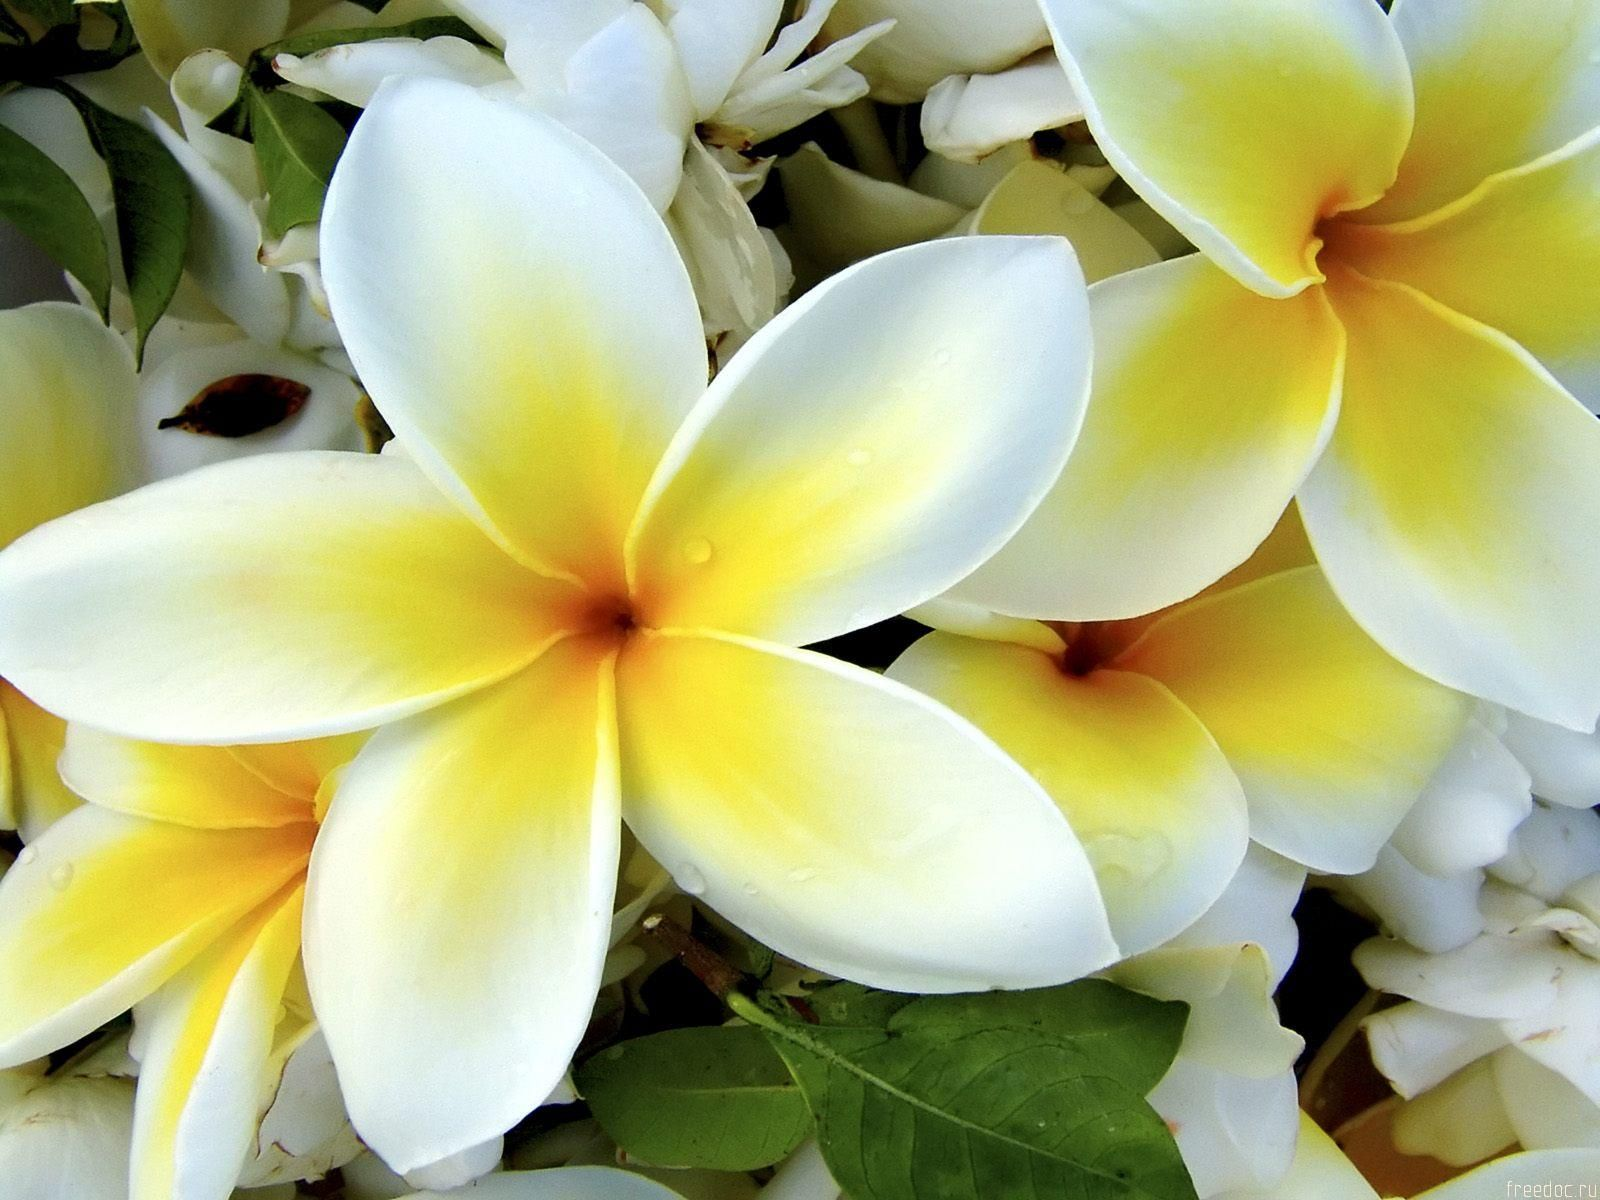 Flowers 4k images httpwallatarwp contentuploads201502 white yellow plumeria just close your eyes and imagine the wonderful scent mightylinksfo